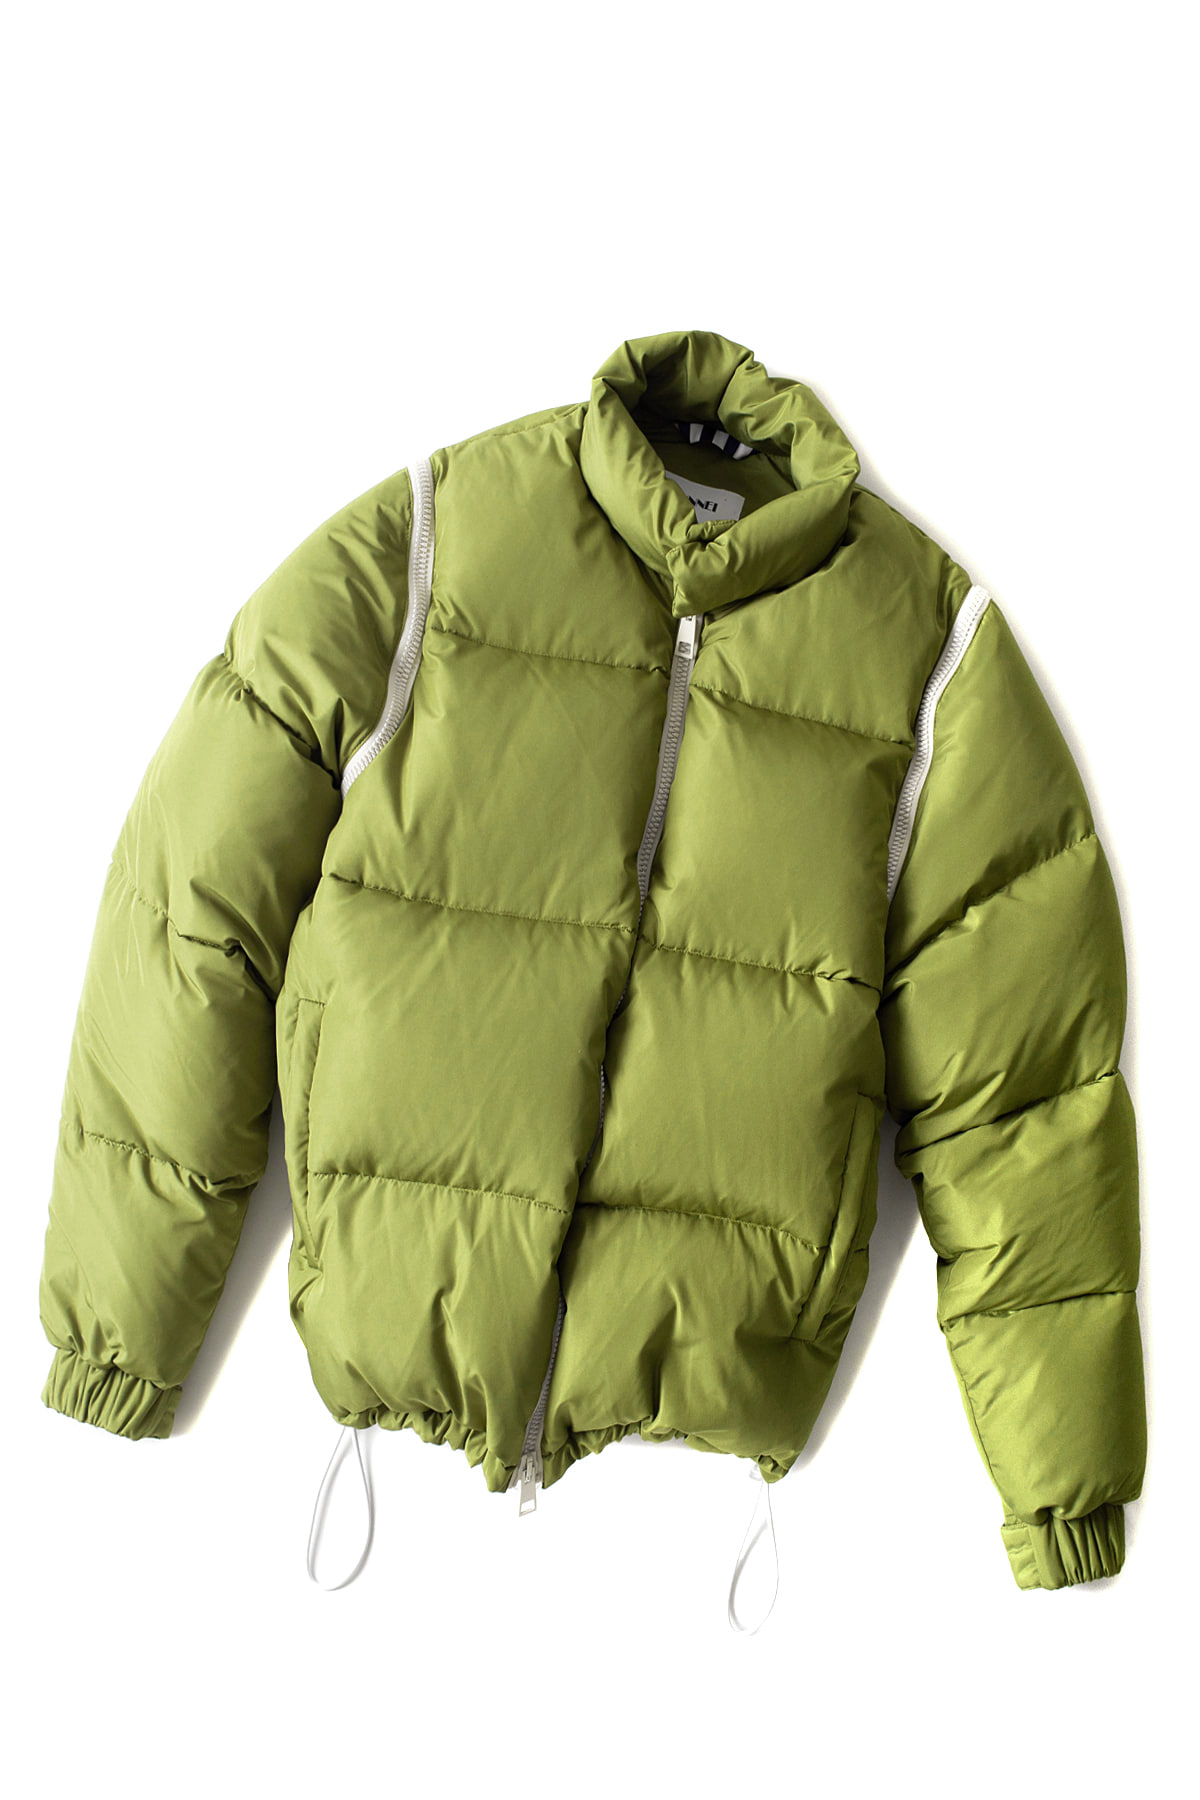 SUNNEI : Puffy Jacket (Olive)